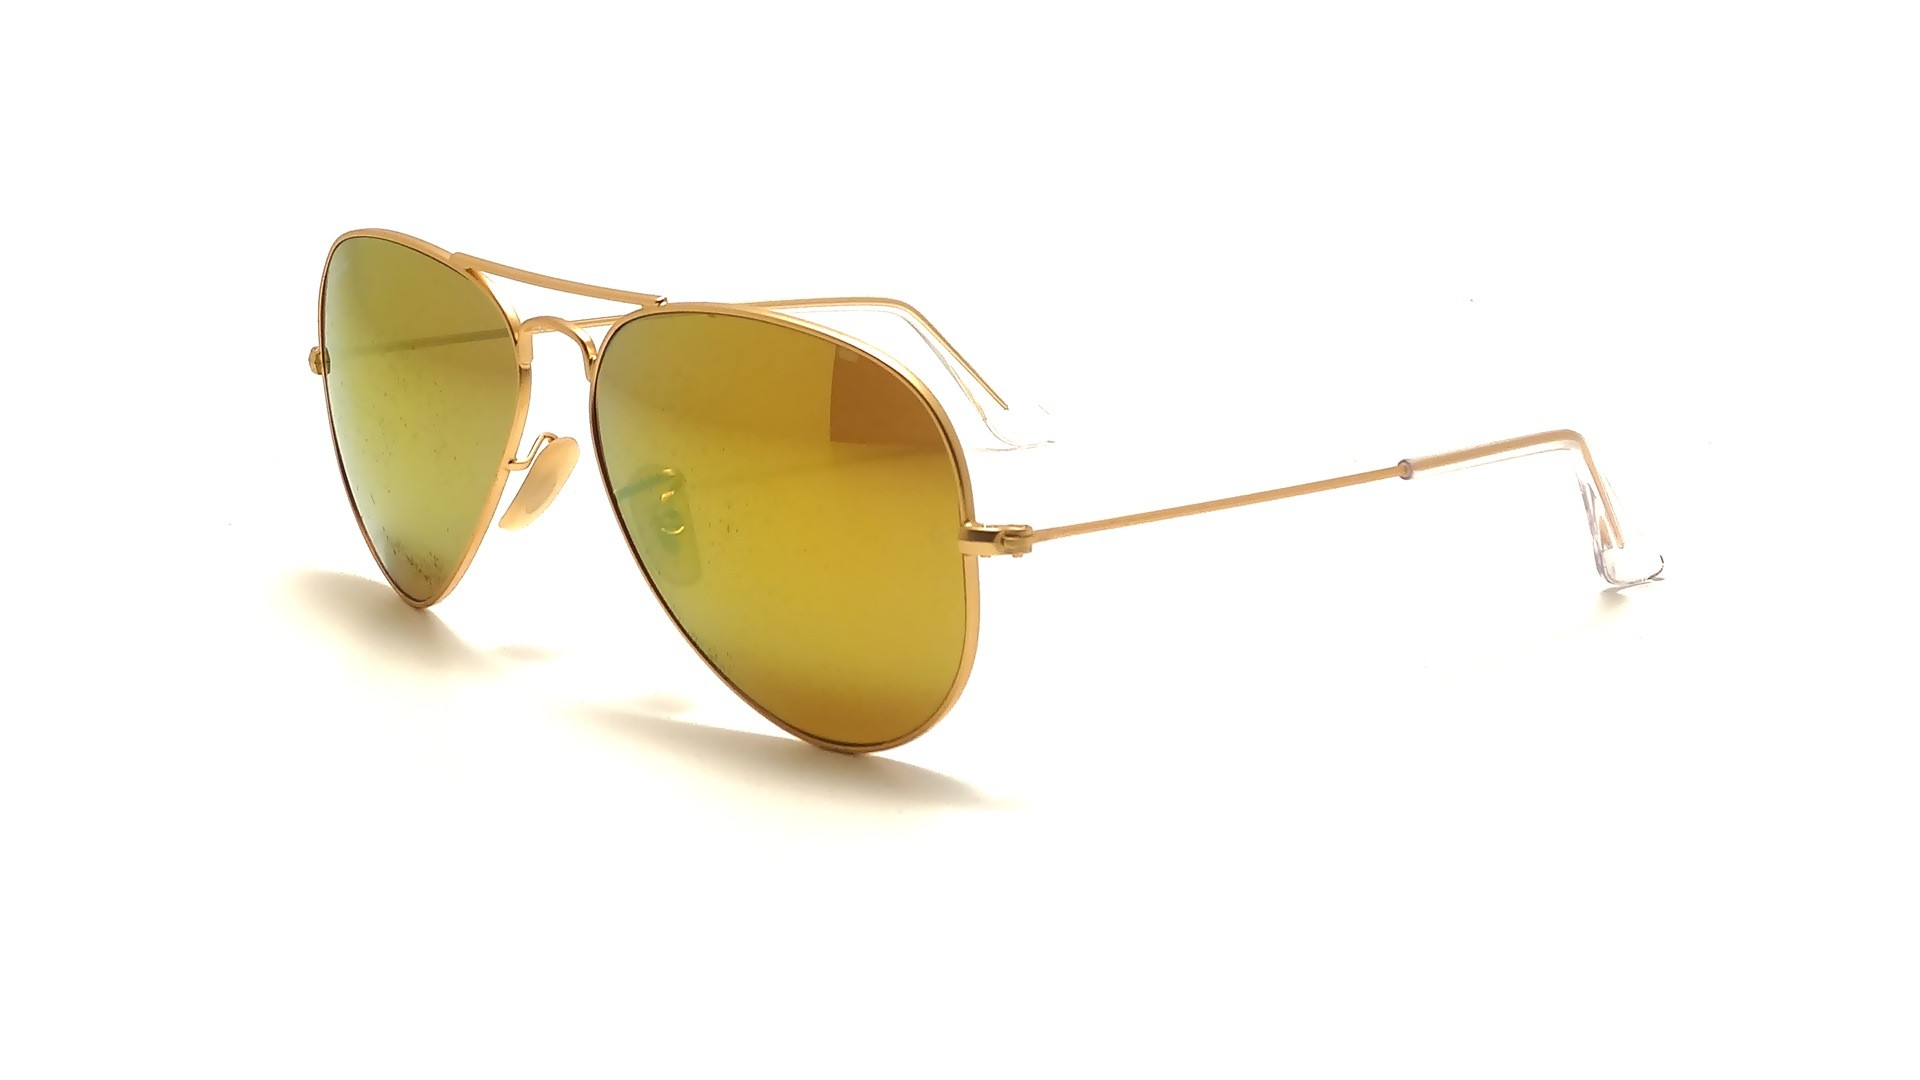 3b090971d7f5f Sunglasses Ray-Ban Aviator Large Metal Gold RB3025 112 93 58-14 Large Mirror